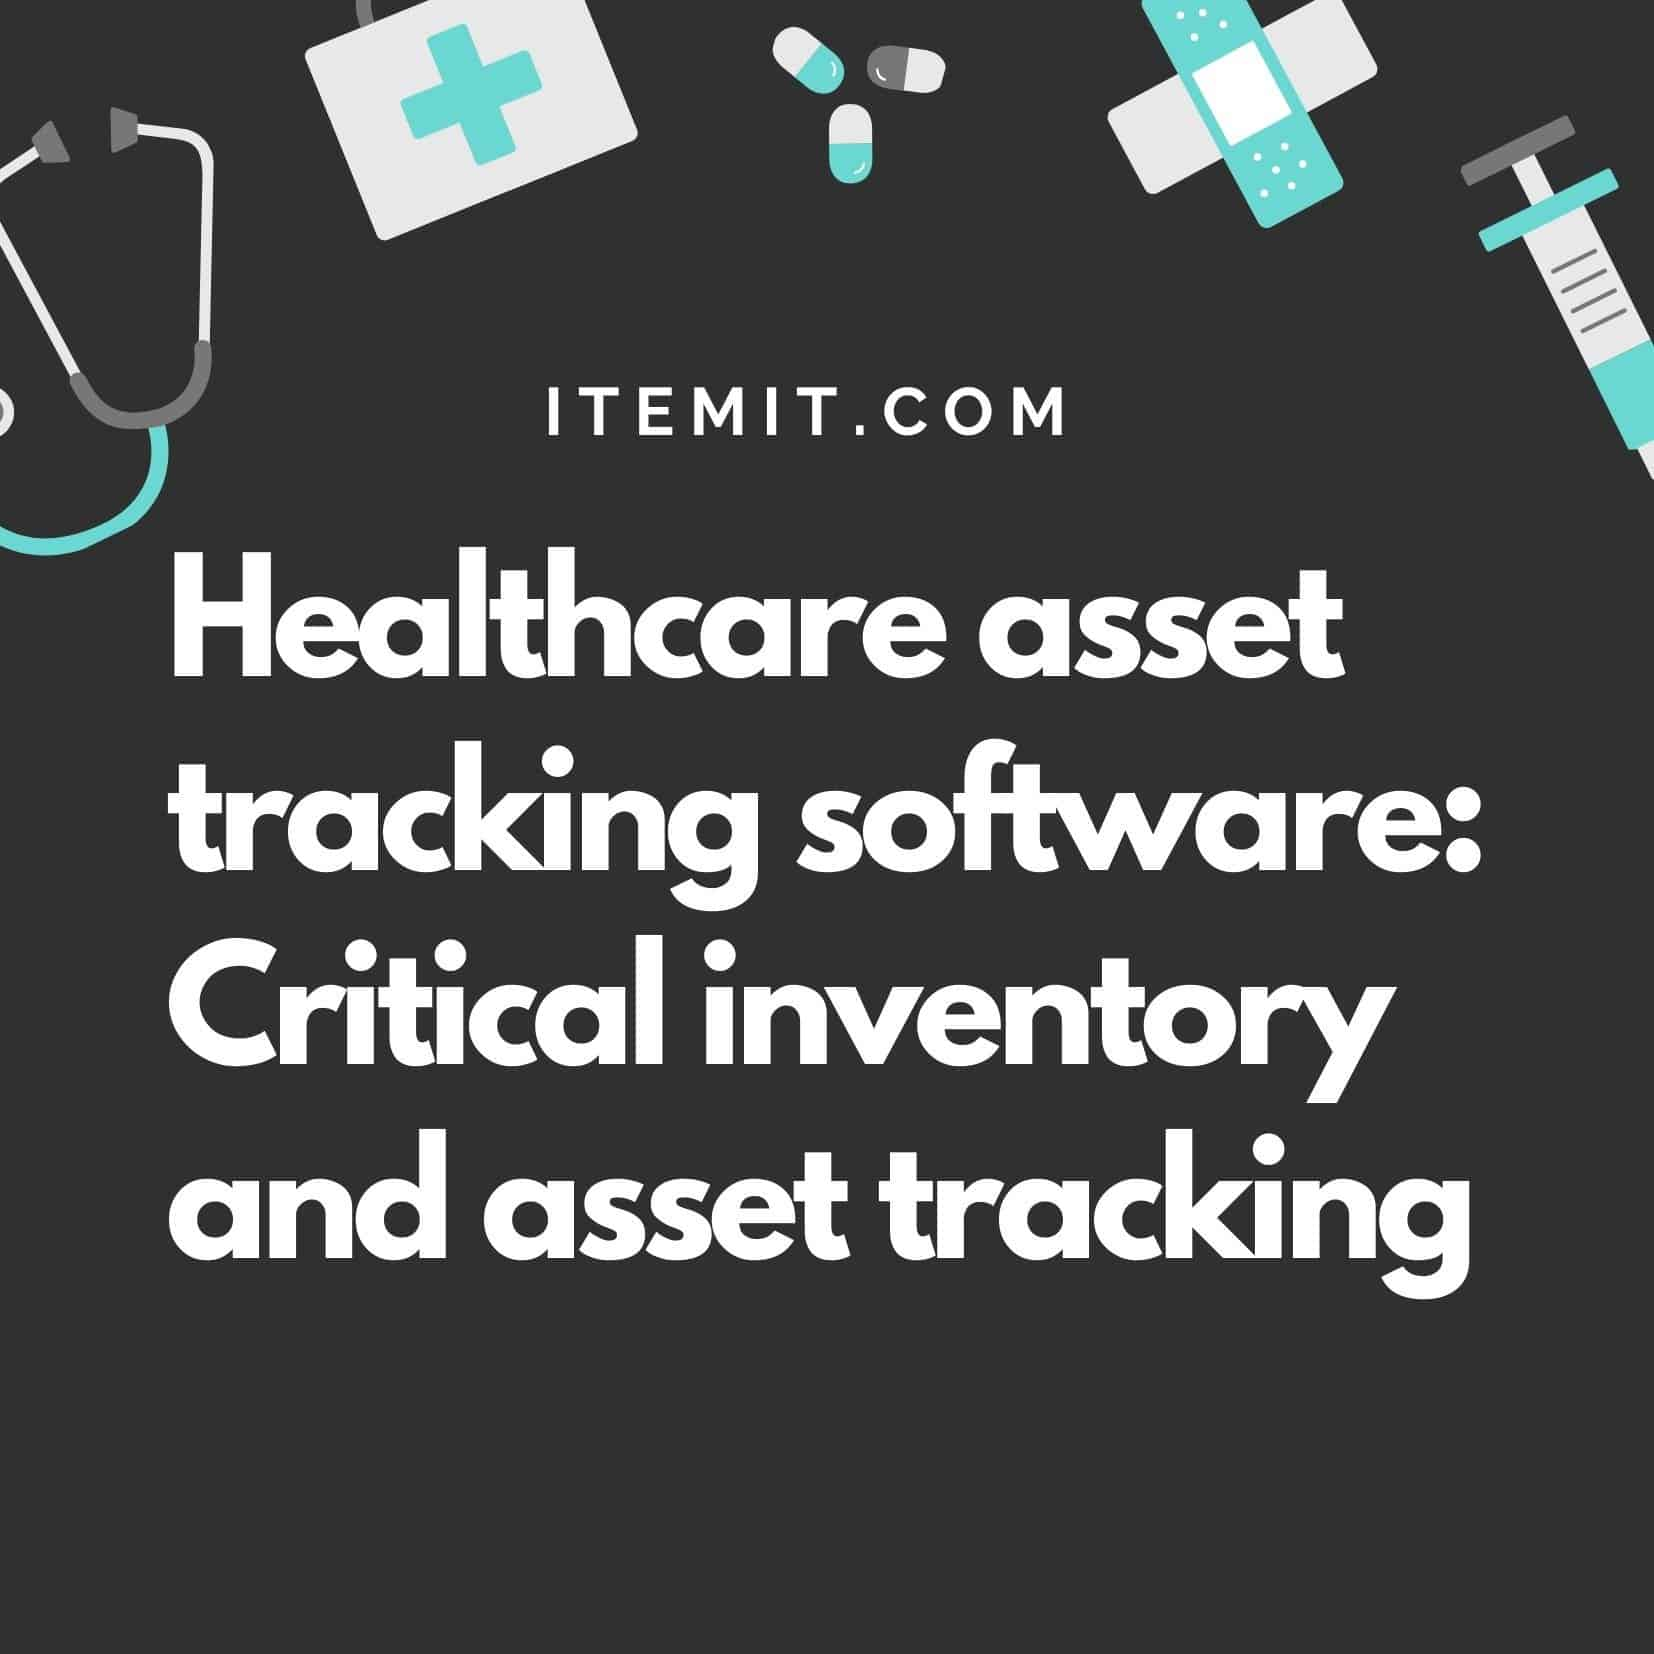 Healthcare asset tracking software Critical inventory and asset tracking